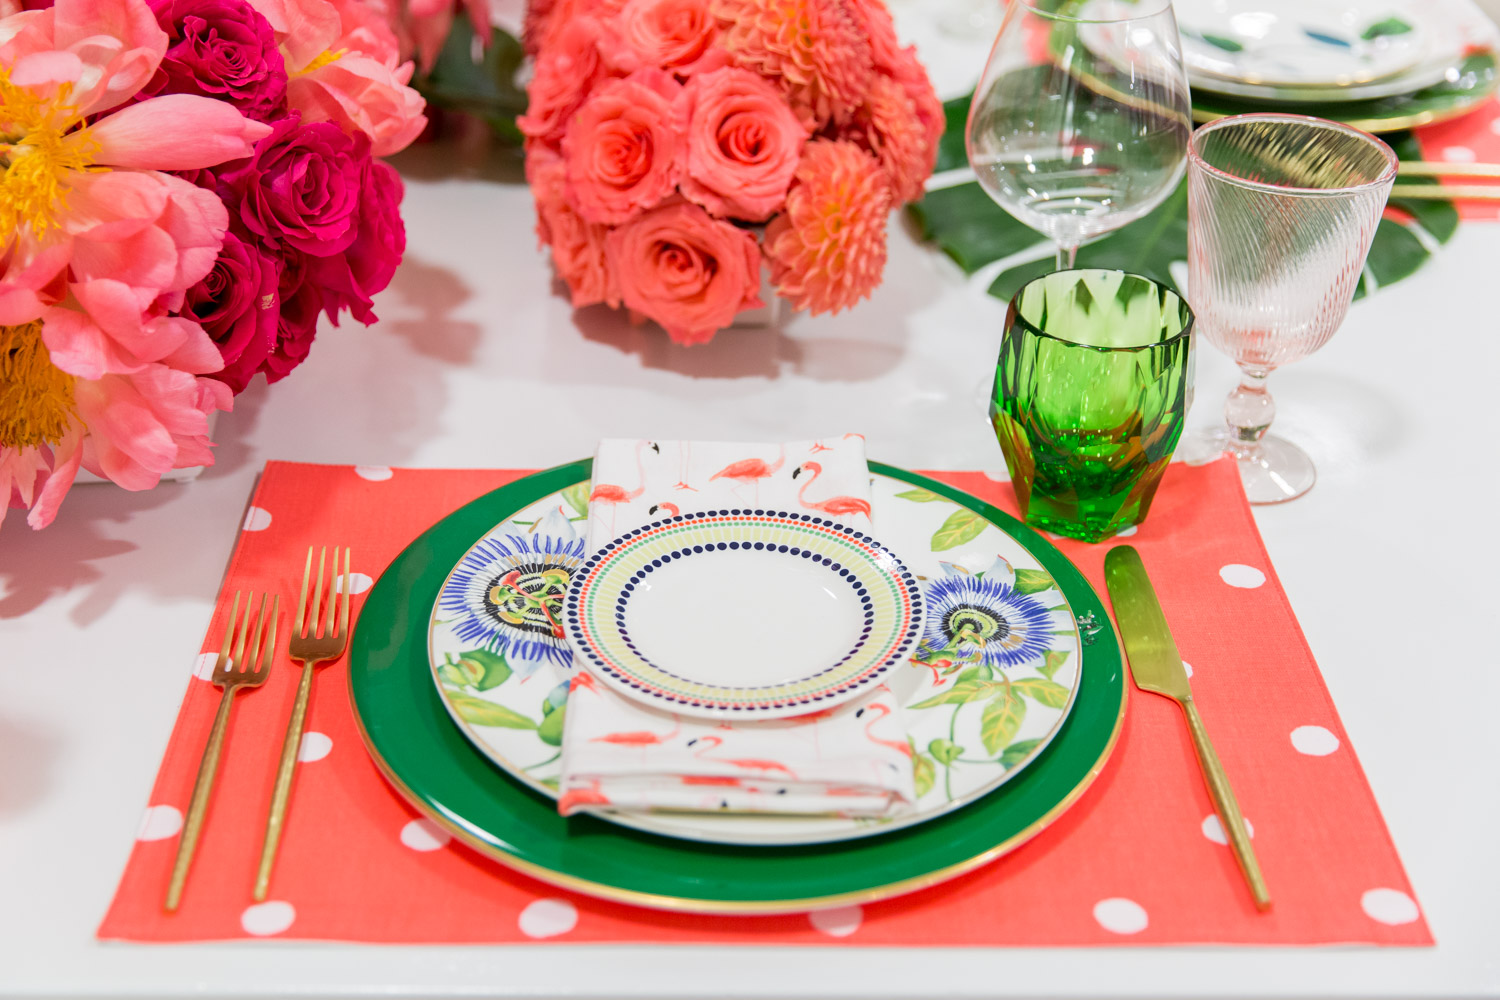 Summery green and blue charger and plate with flamingo napkin and modern green glassware on top of a pink polkadot Kate Spade placemat with Bloom Box Details Details and Cavin Elizabeth Photography